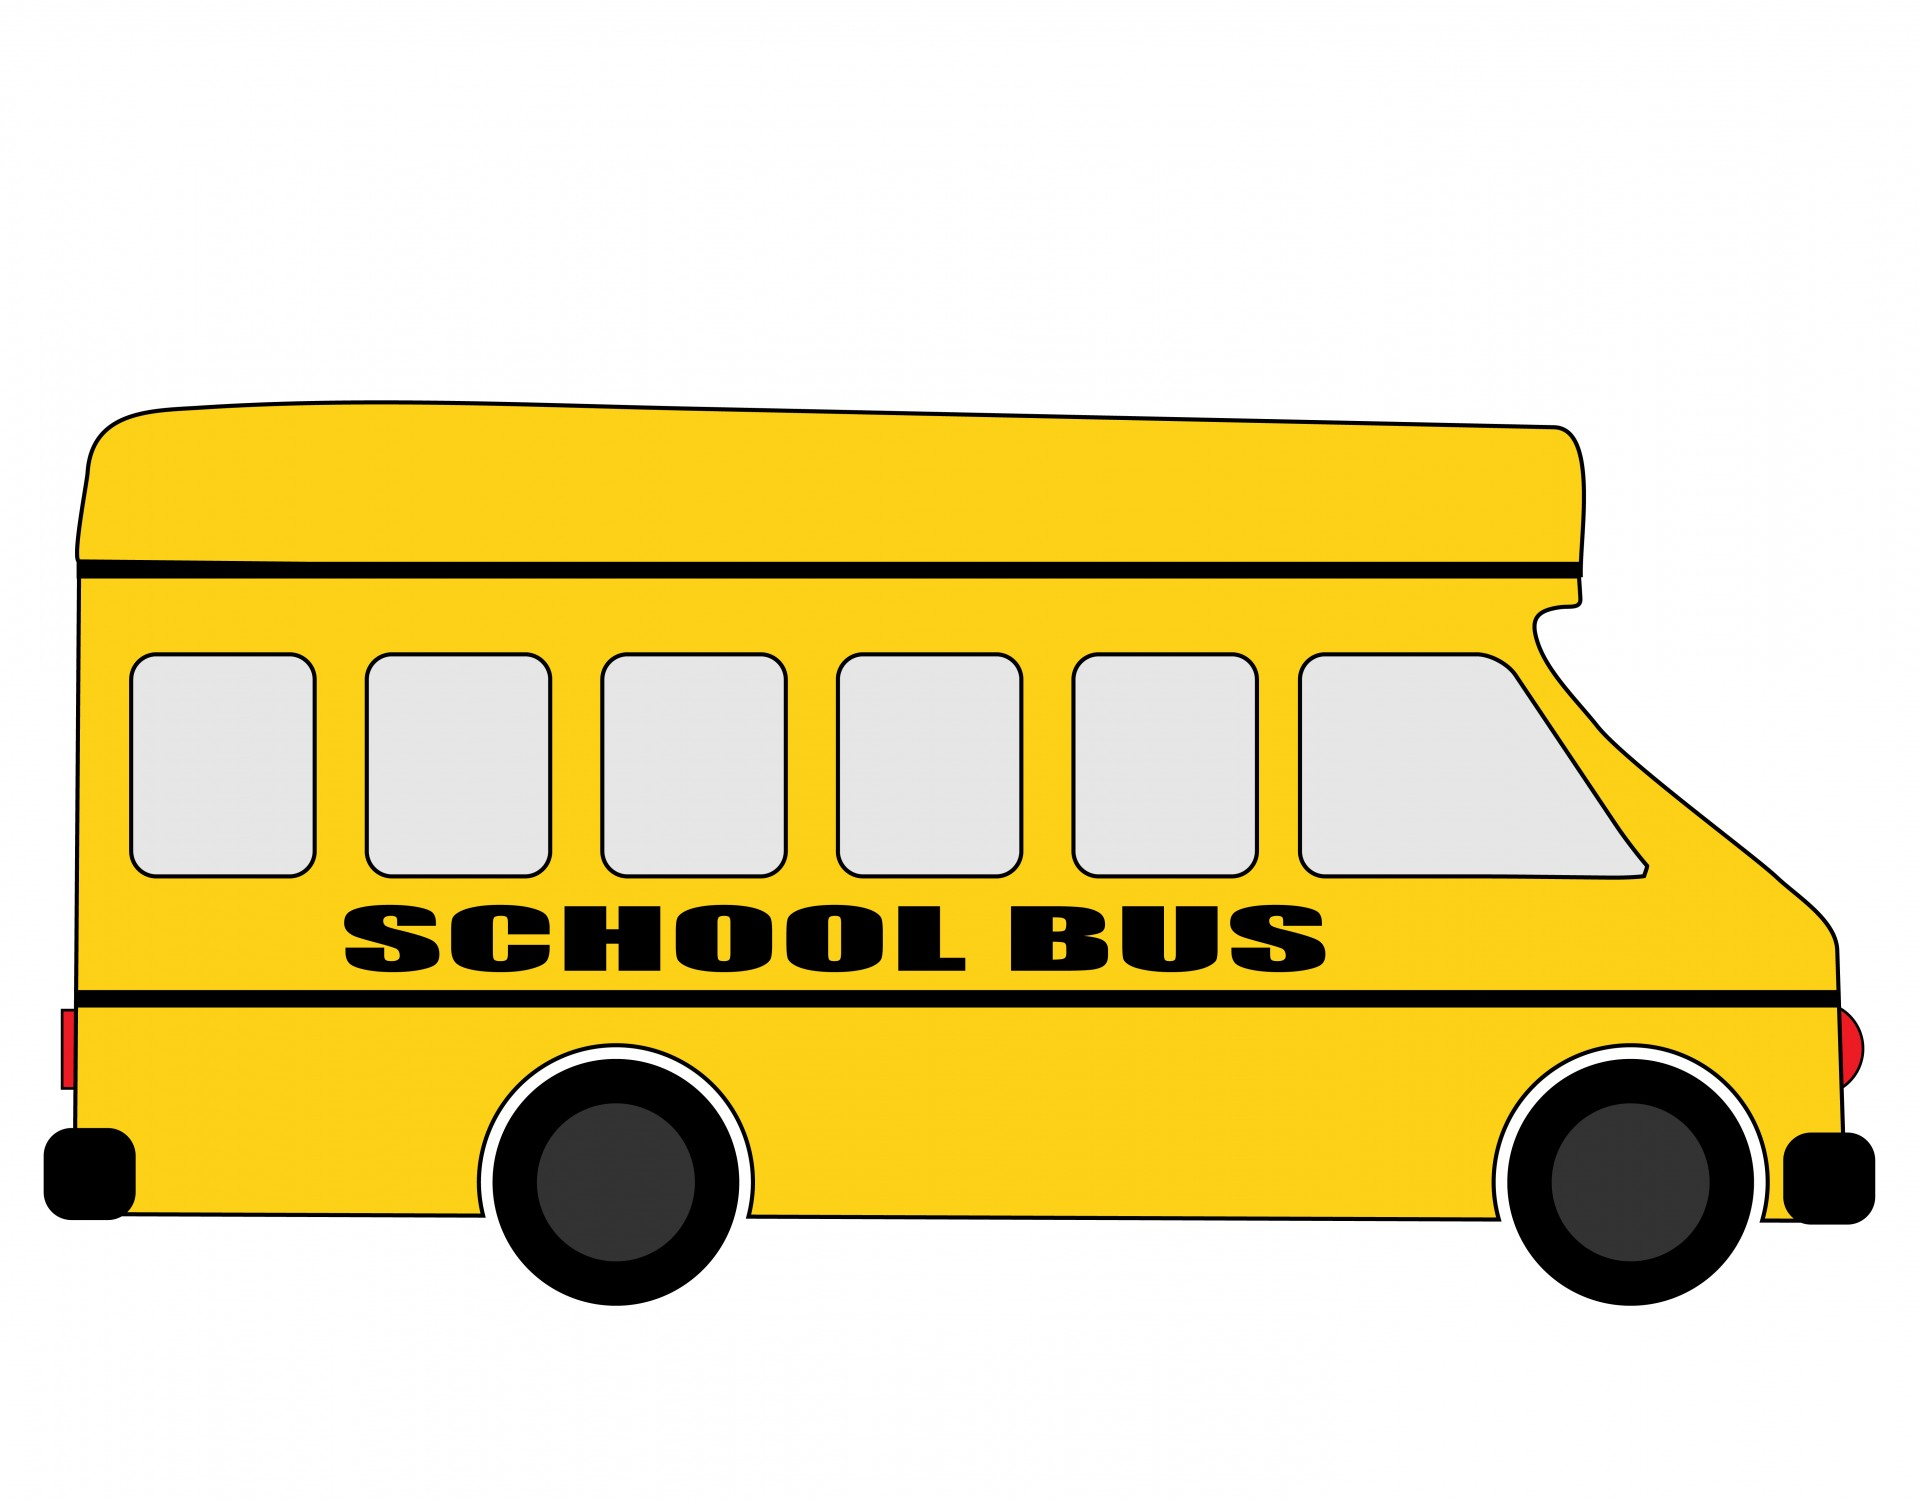 Bus clipart school bus. Free stock photo public